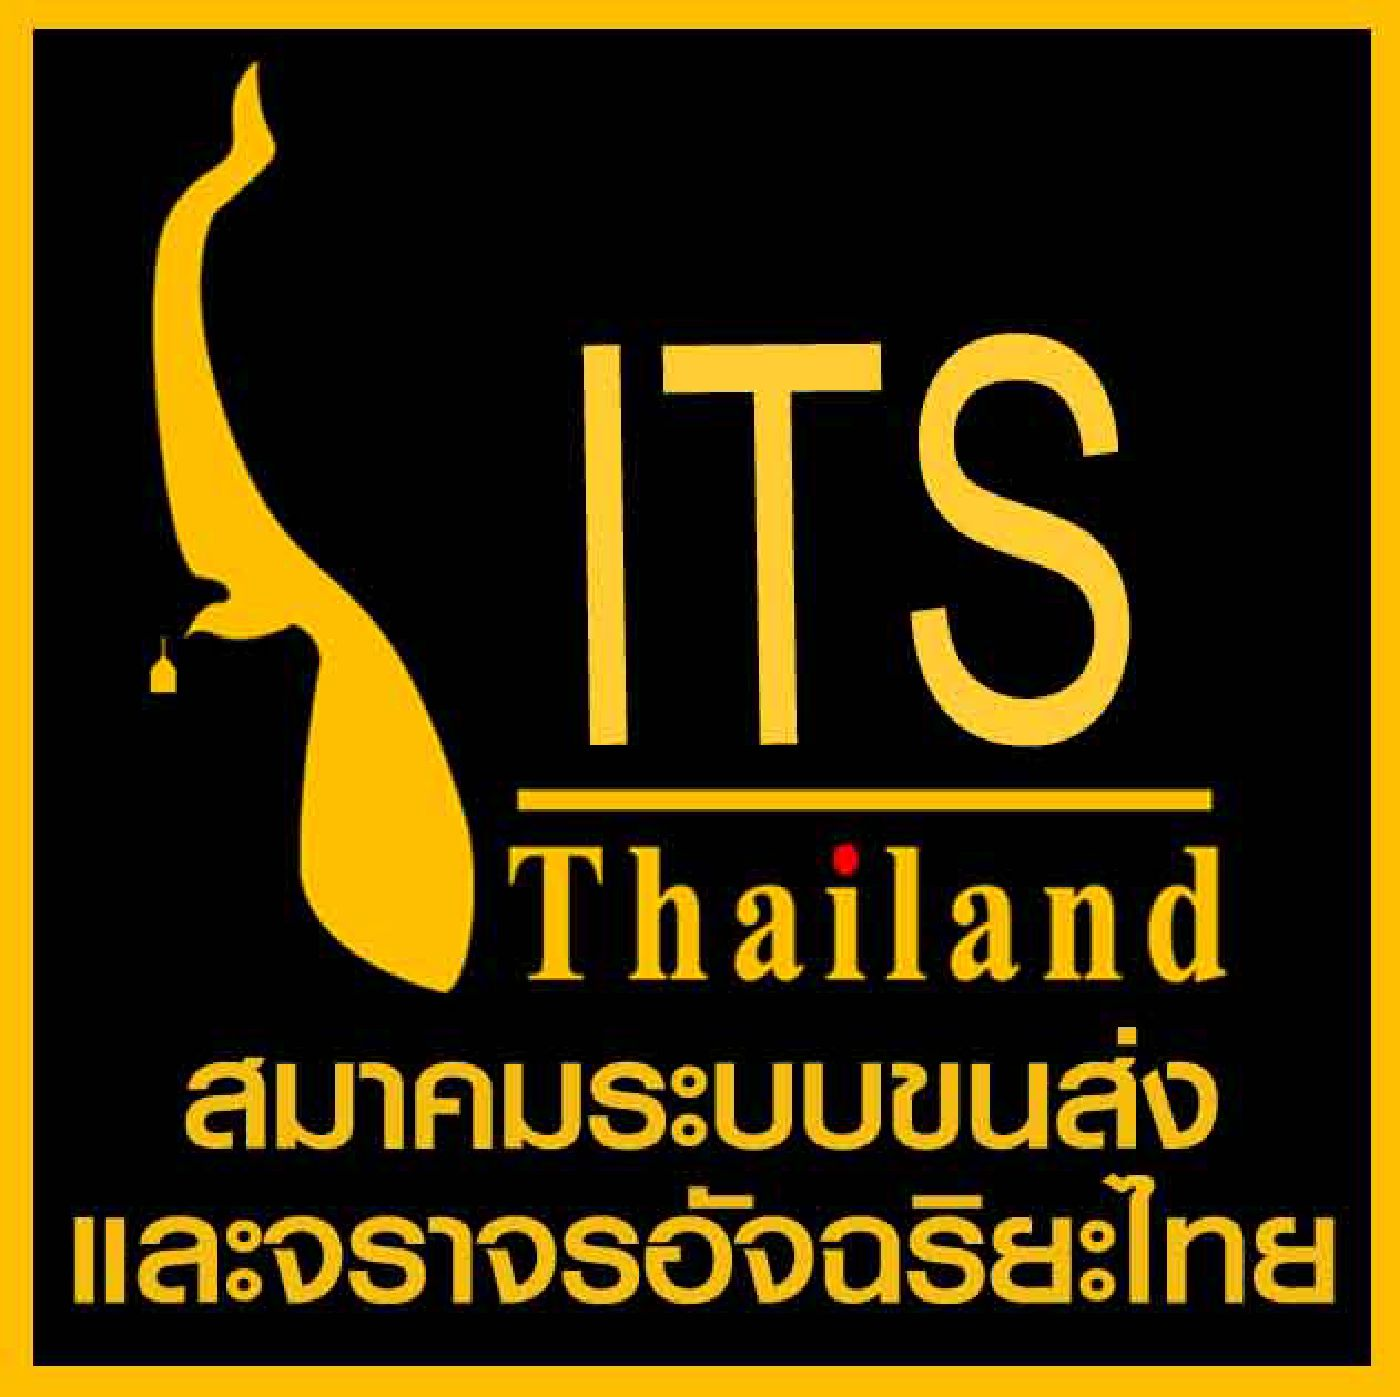 about its thailand